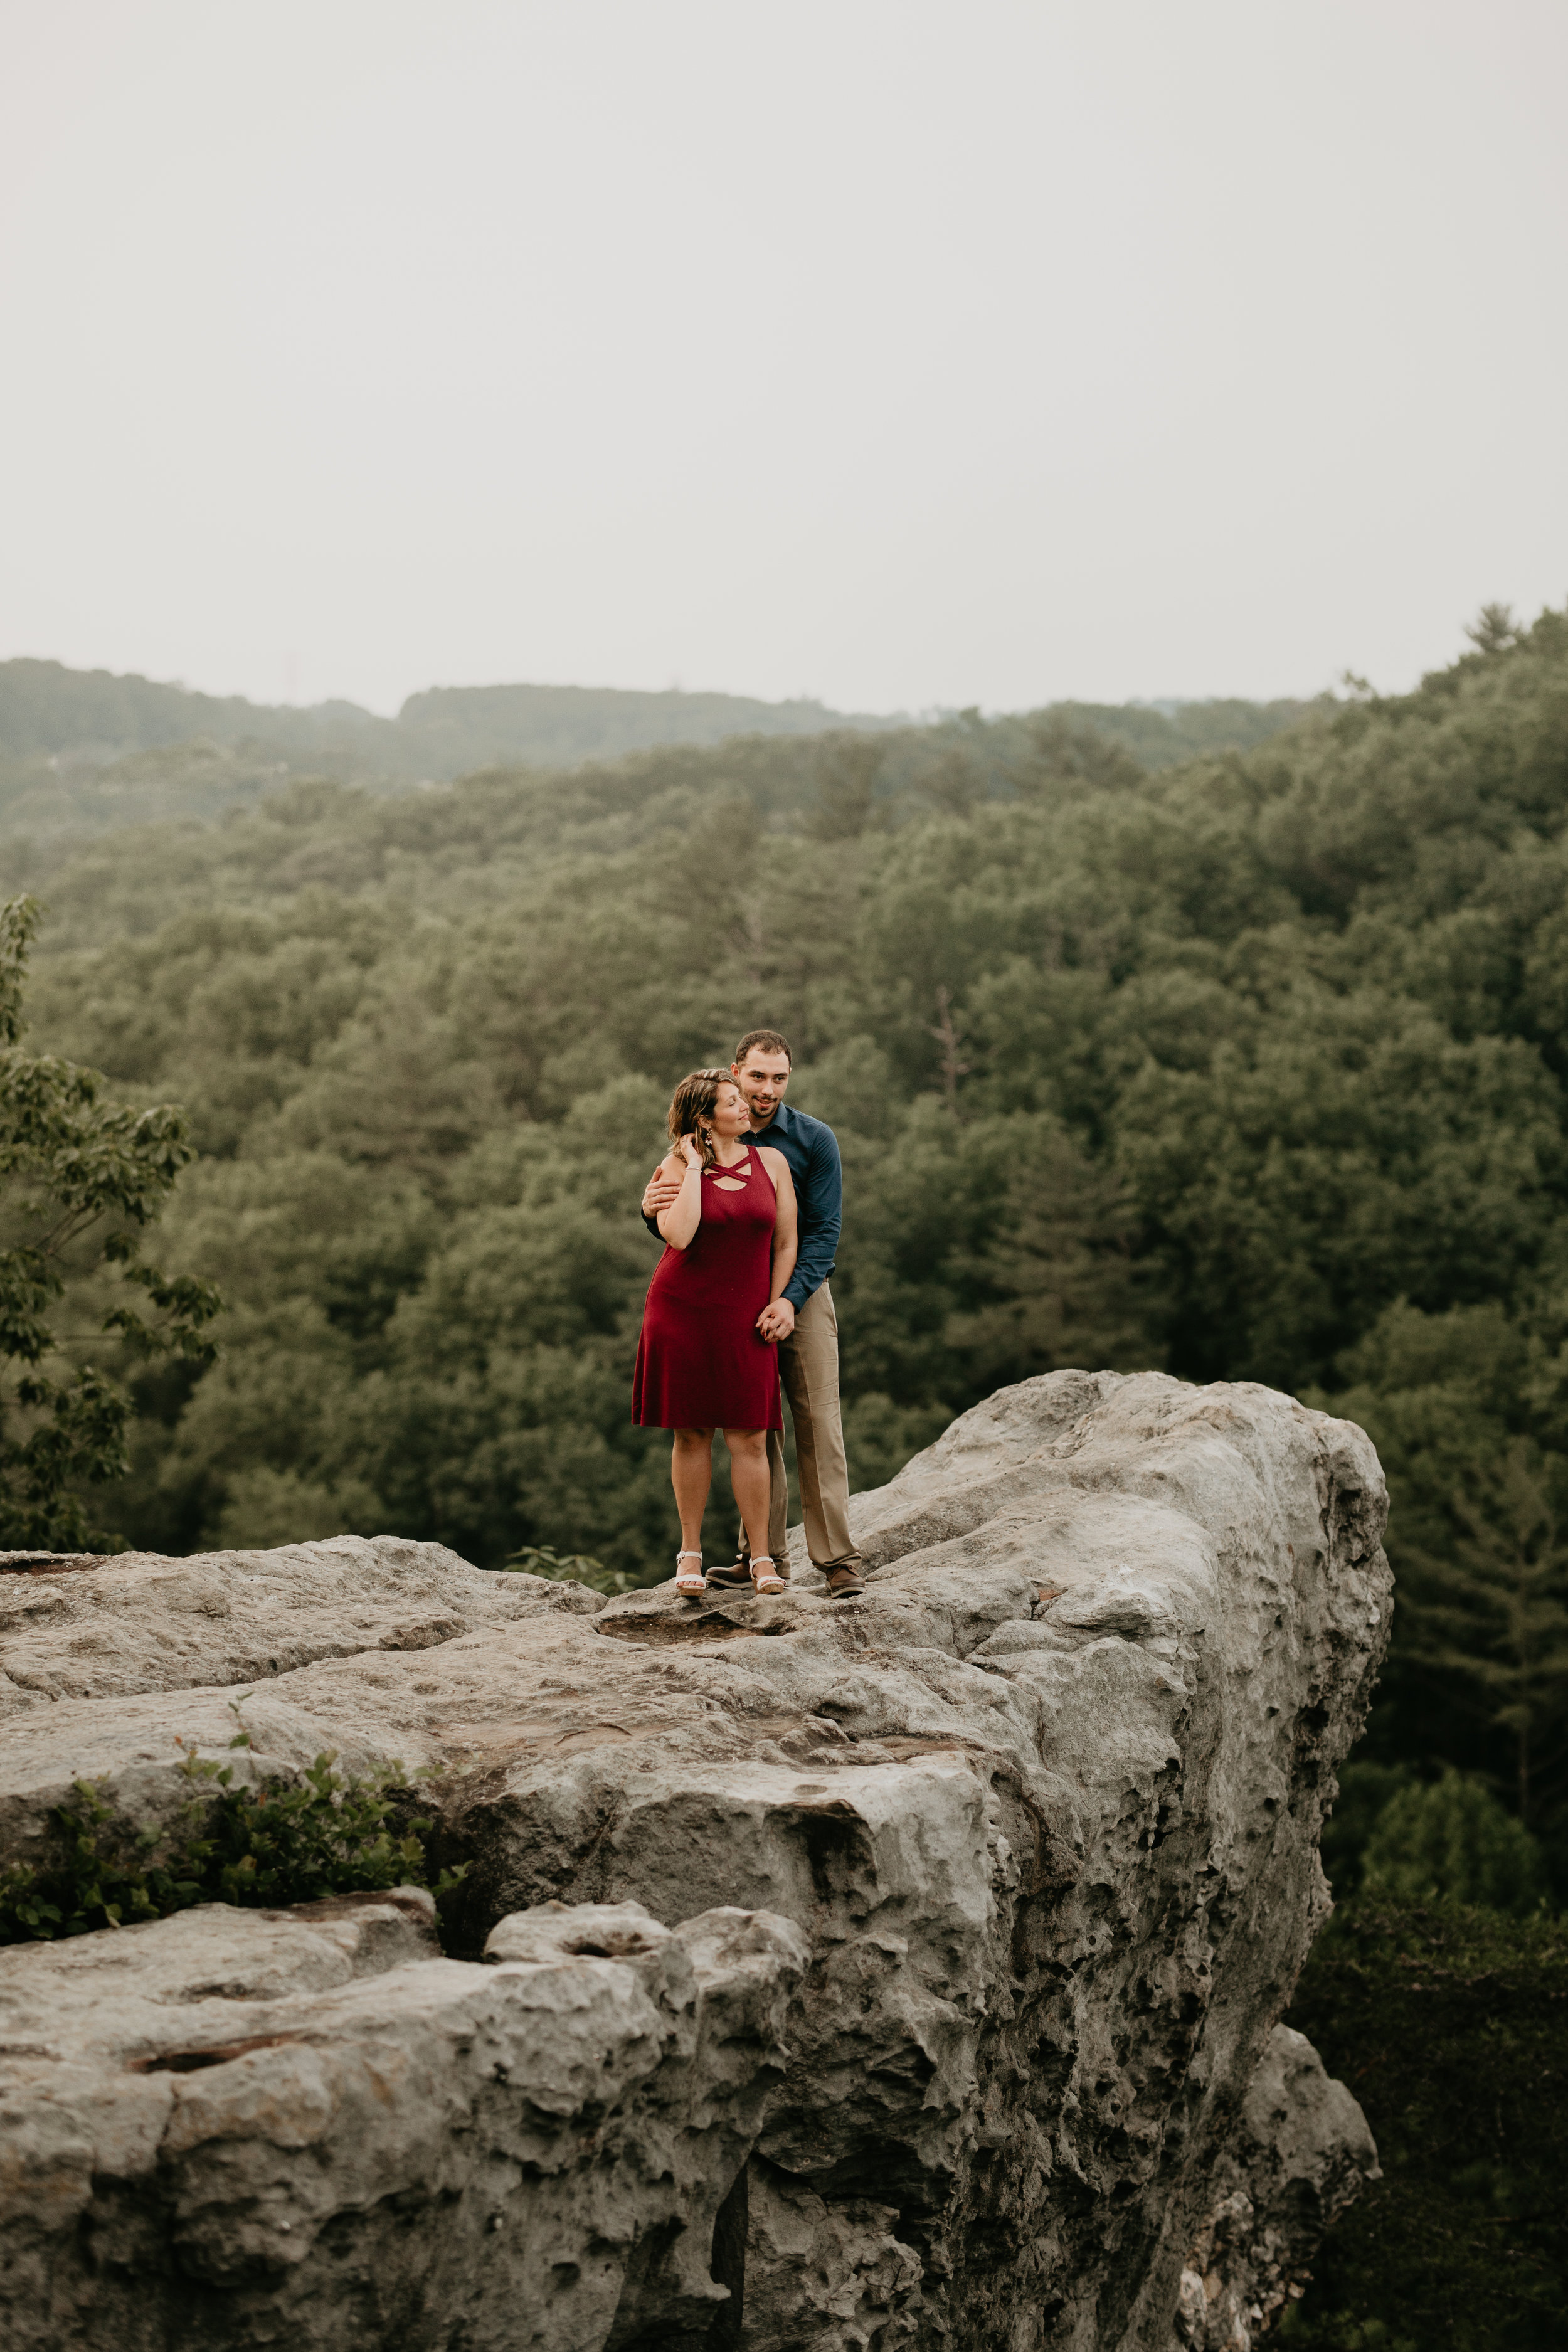 Nicole-Daacke-Photography-rock-state-park-overlook-king-queen-seat-maryland-hiking-adventure-engagement-session-photos-portraits-summer-bel-air-dog-engagement-session-26.jpg